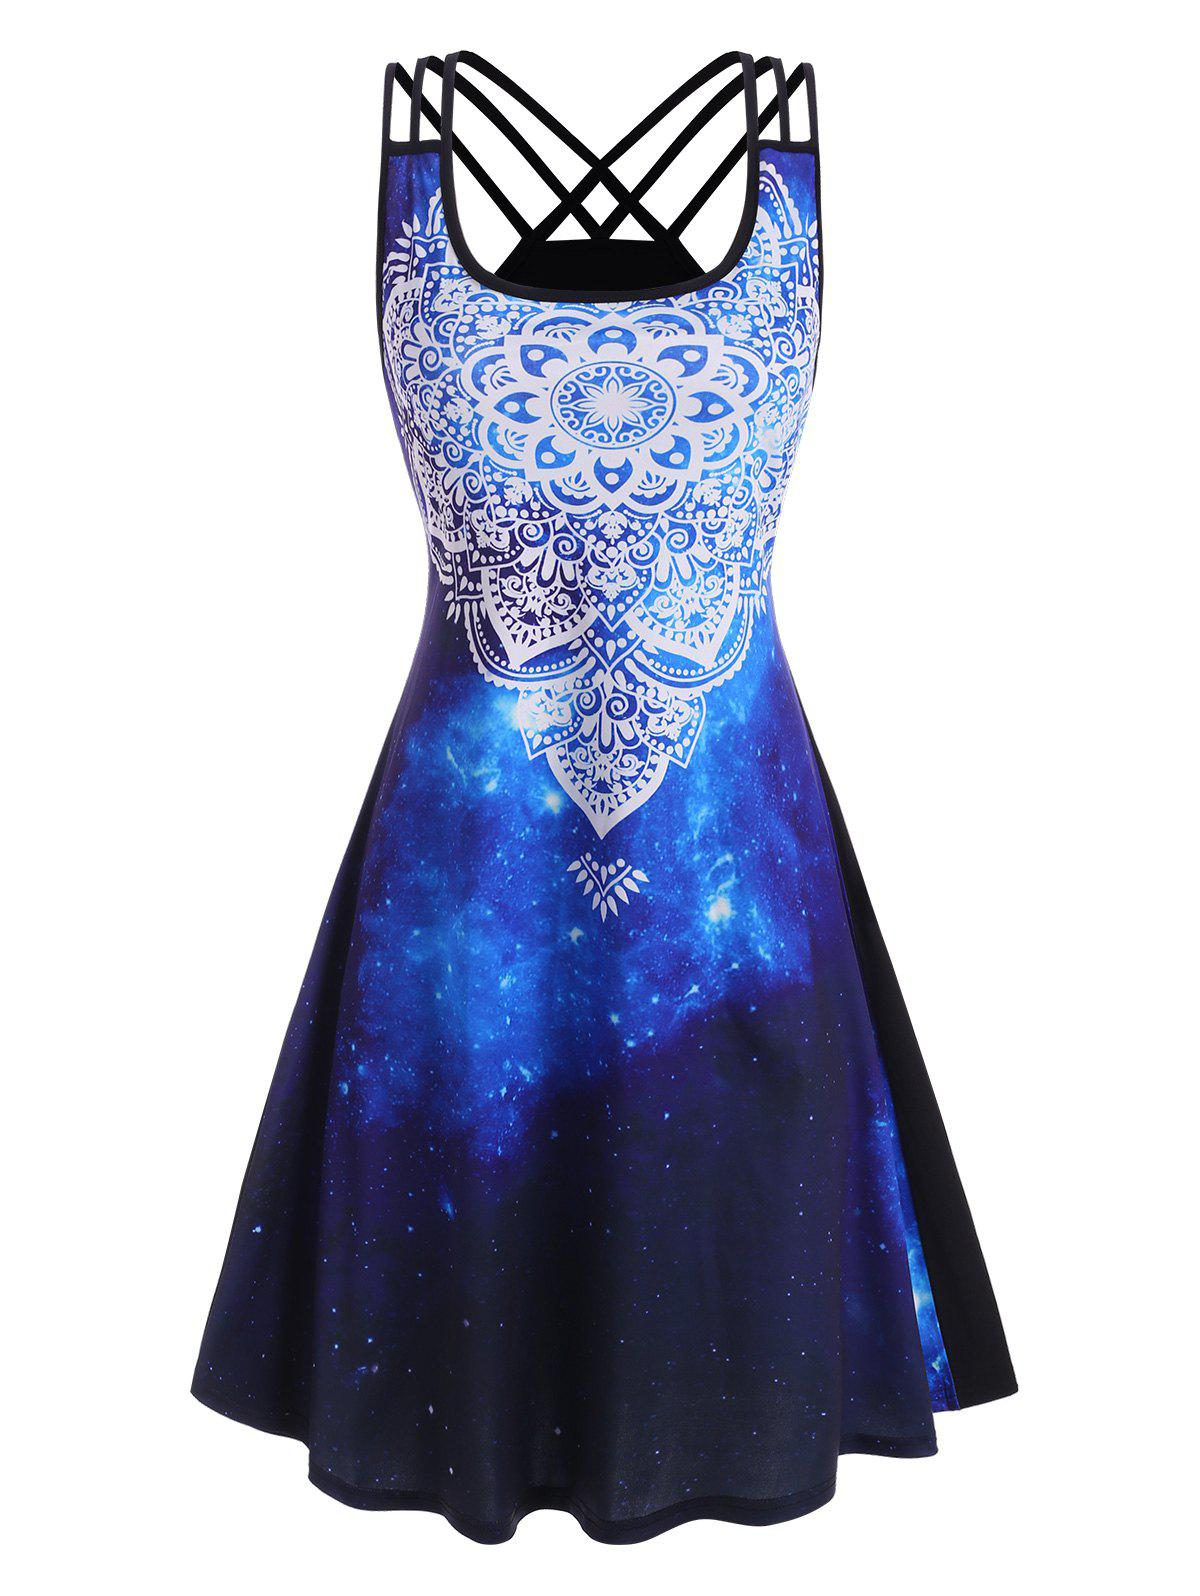 Unique Splatter Paint Galaxy Printed Strappy Back Dress